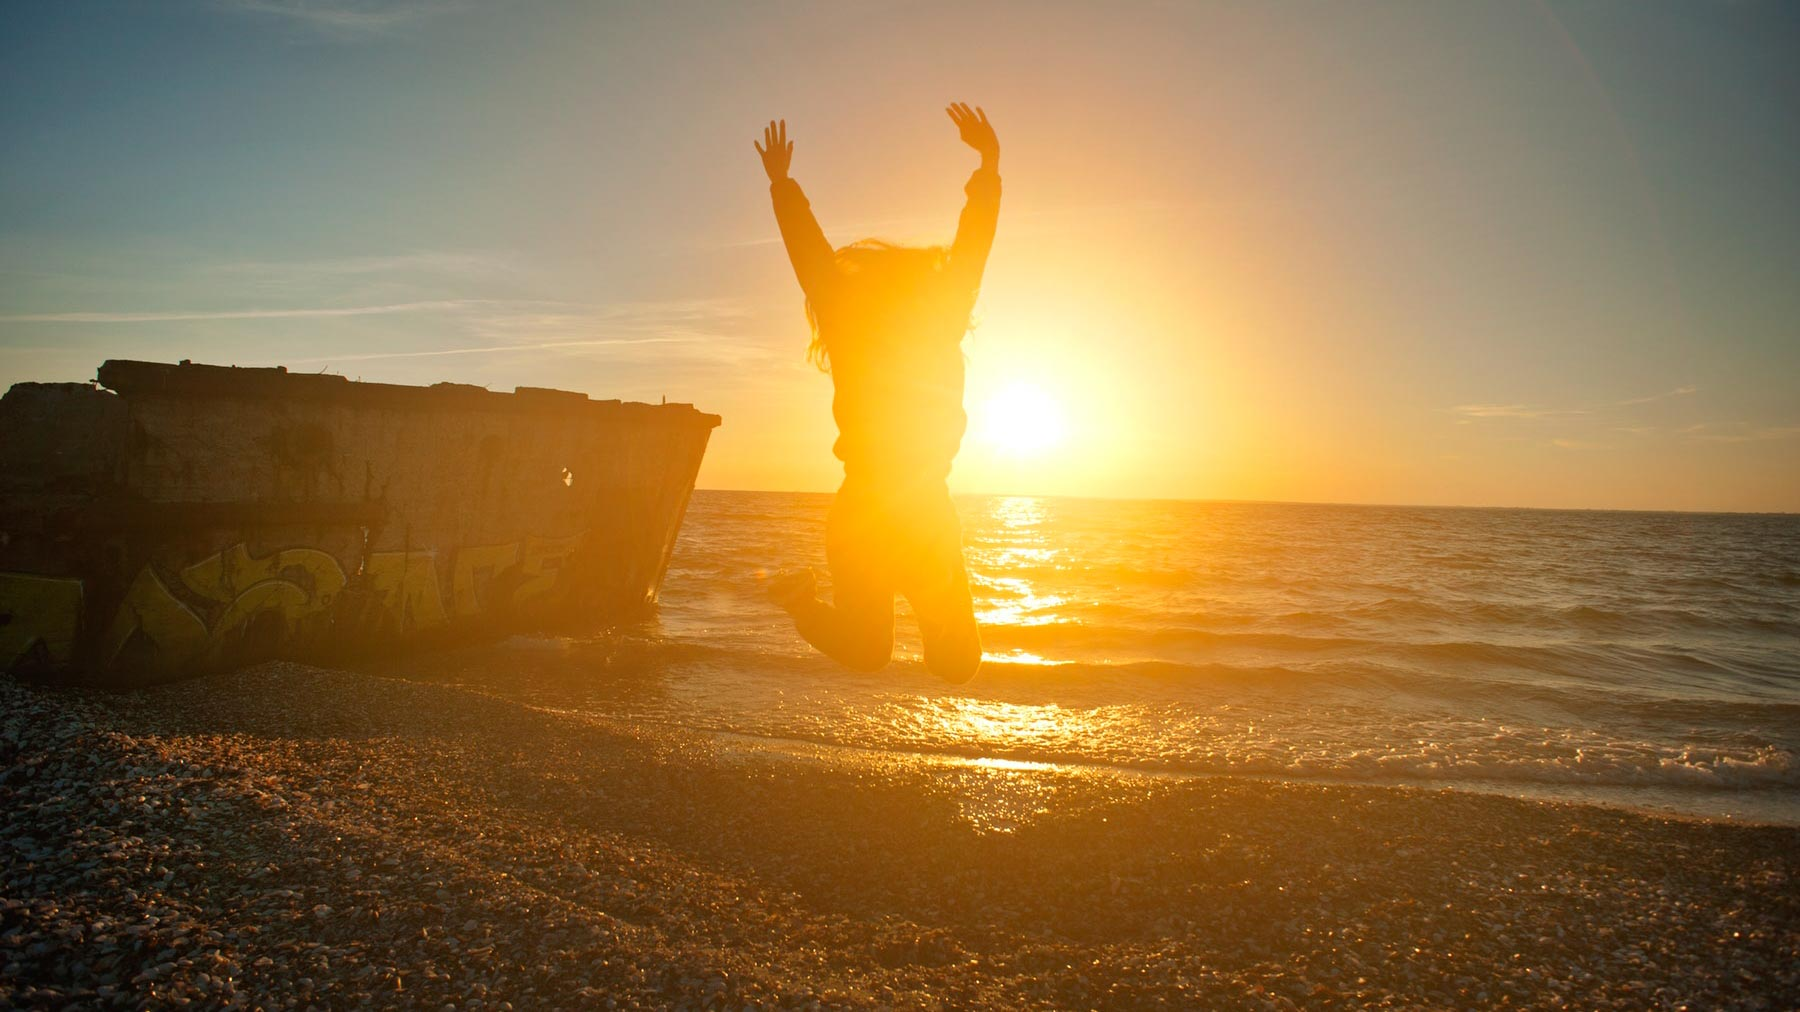 person jumping joyfully on beach in sunset to represent relief and joy